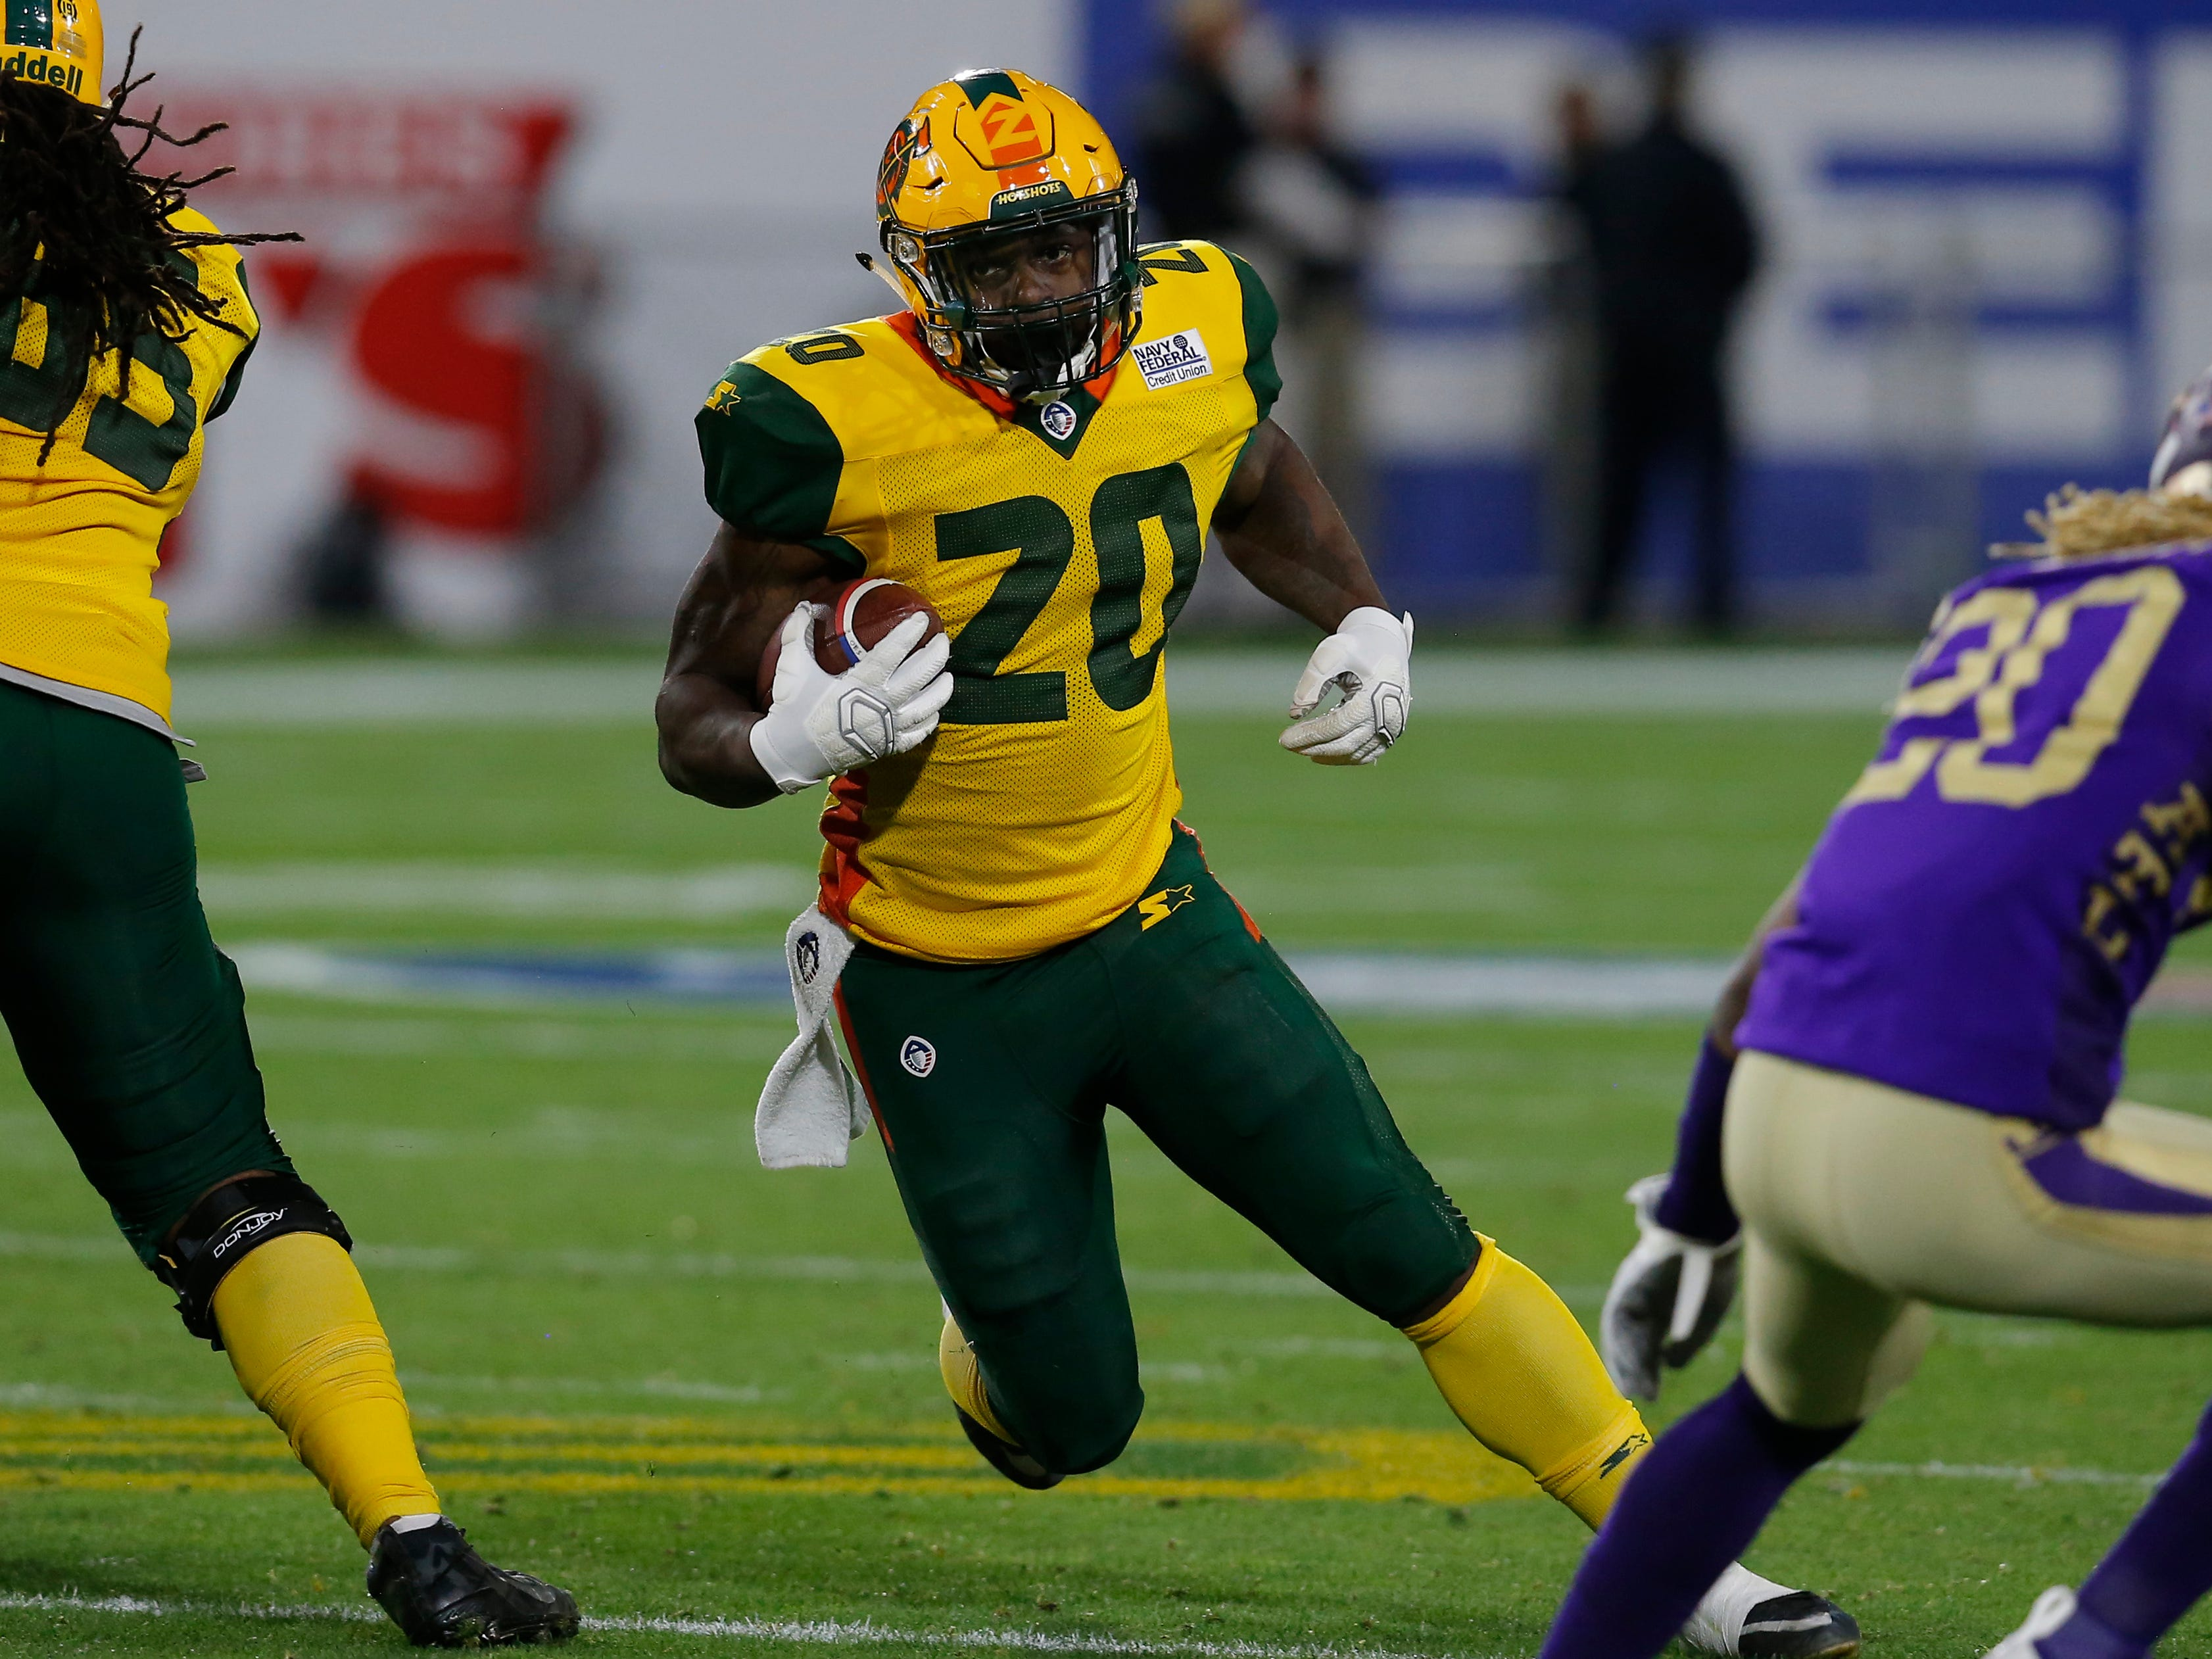 Arizona Hotshots running back Tim Cook (20) runs for a firstdown against the Atlanta Legends in the second half during an AAF football game, Sunday, March 3, 2019, at Sun Devil Stadium in Phoenix.